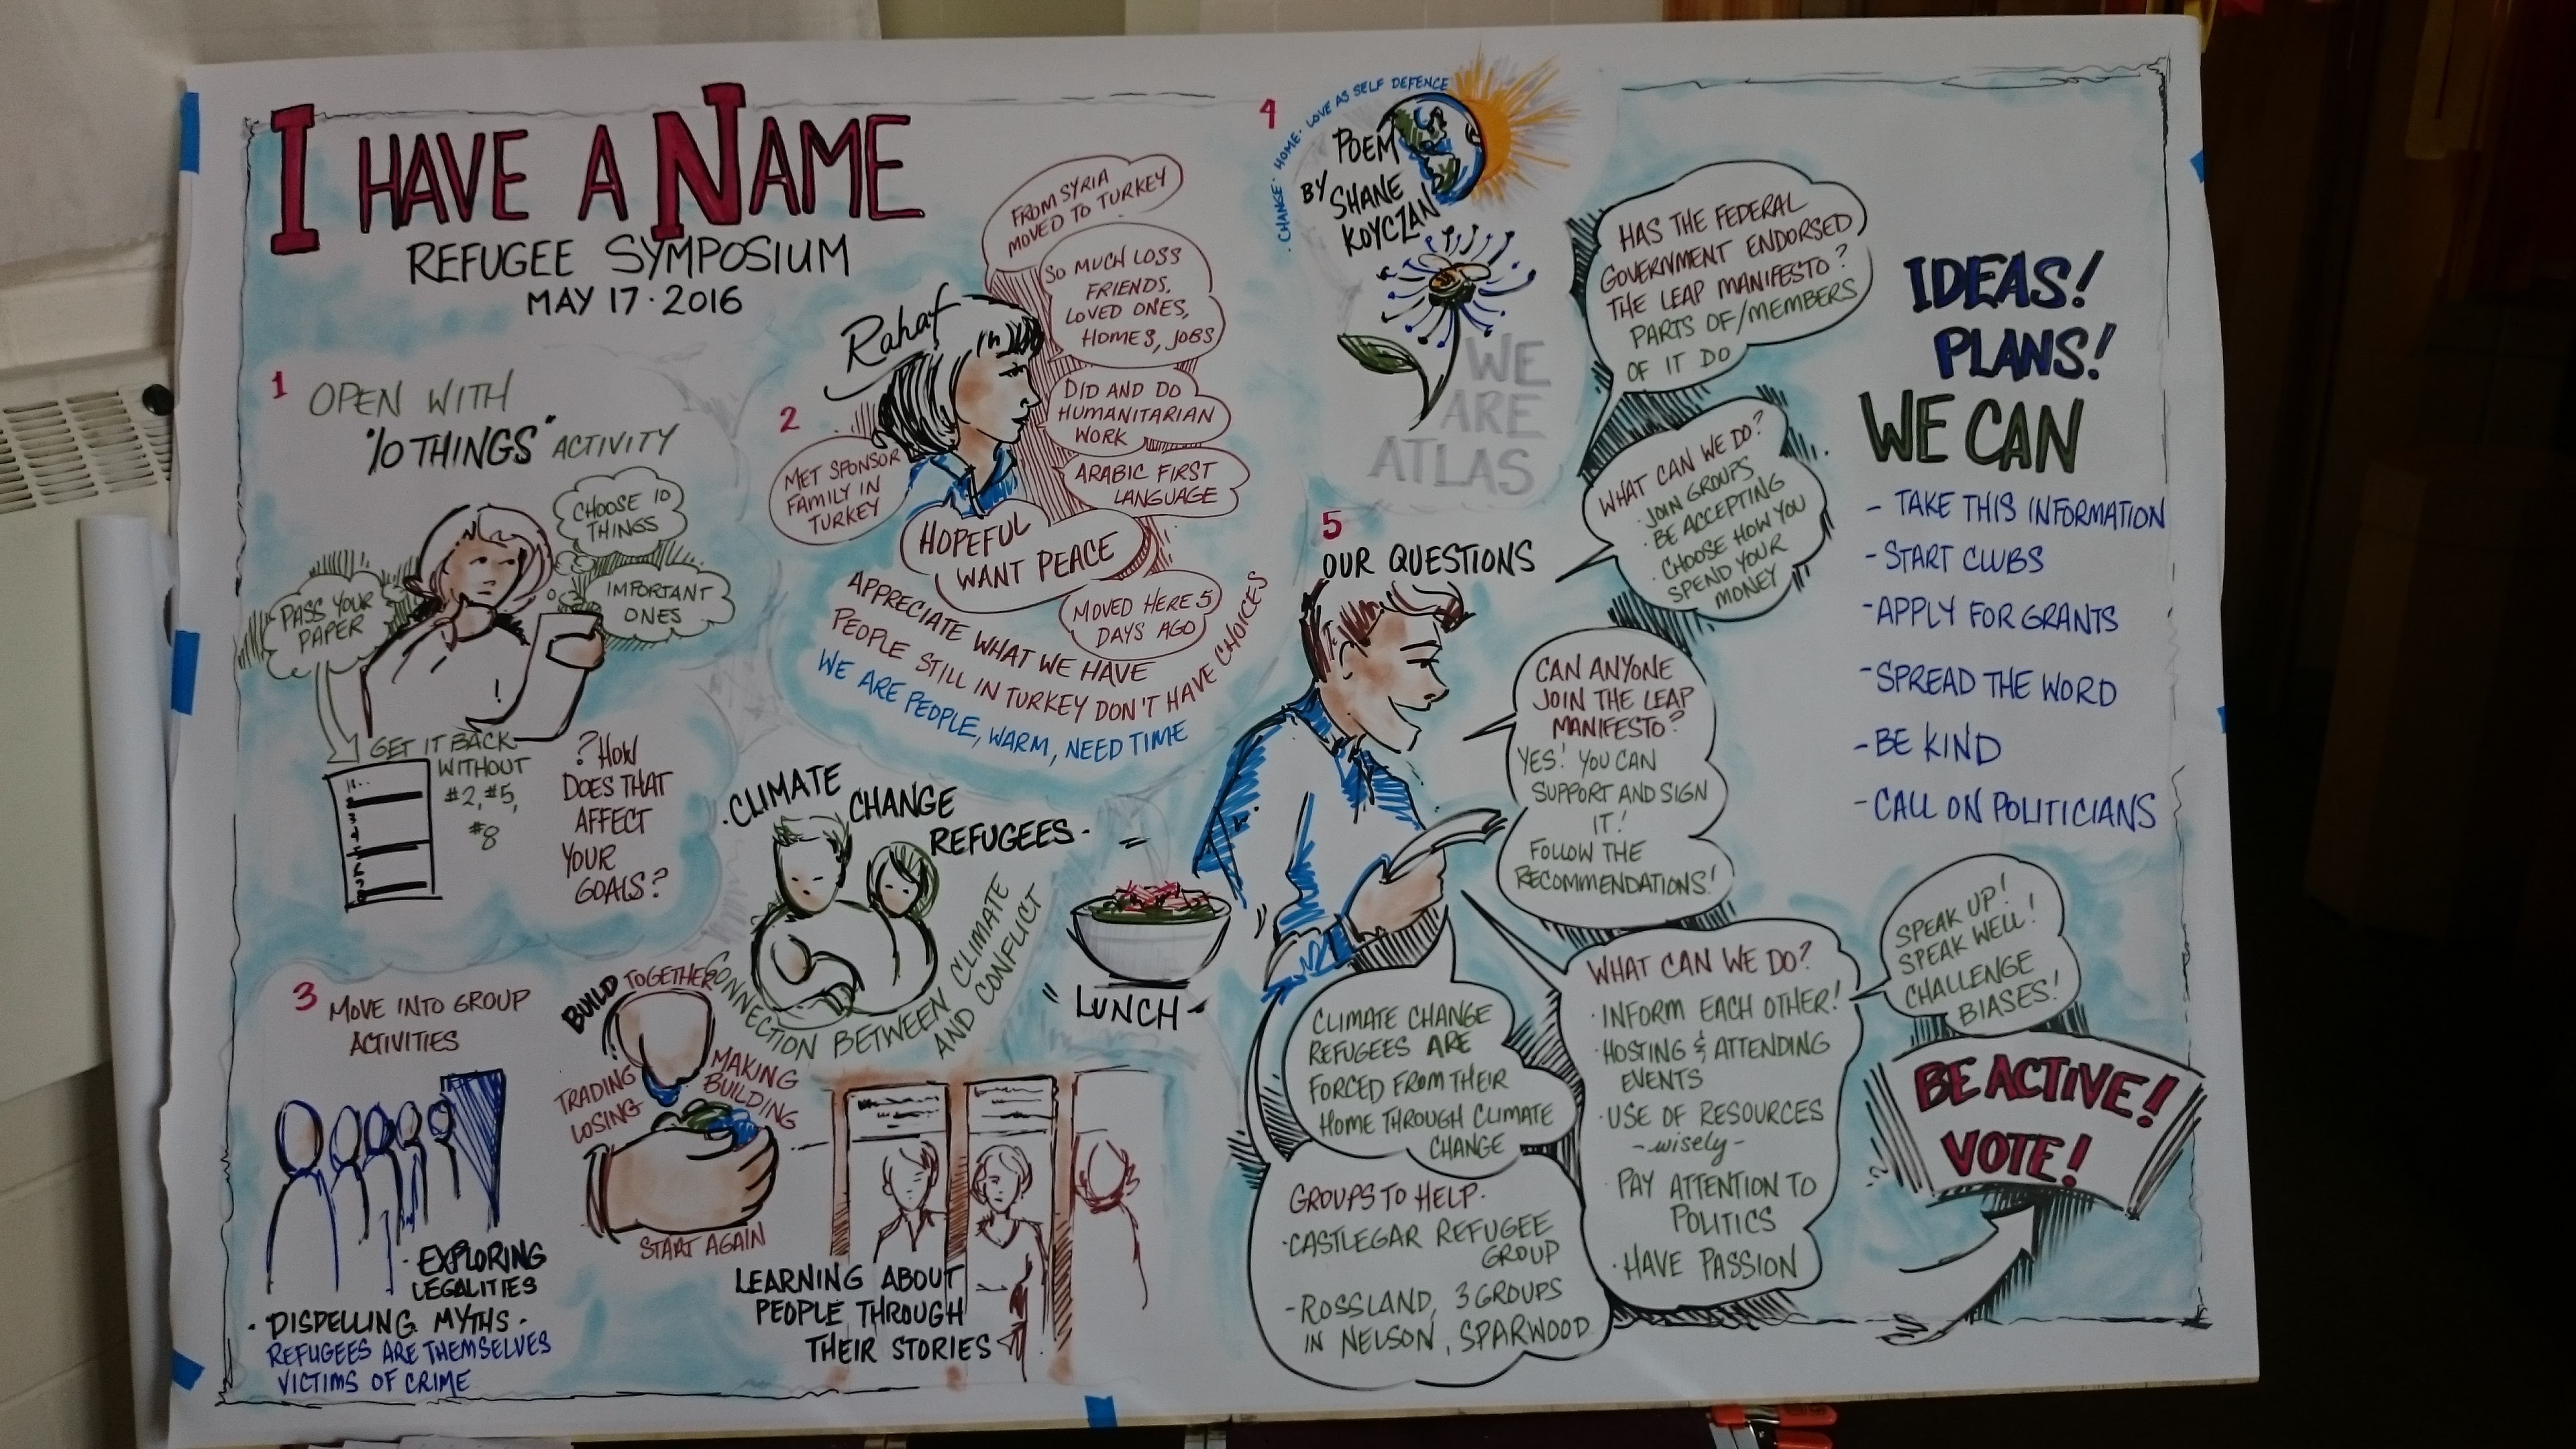 I have a NAME student-led conference 2016